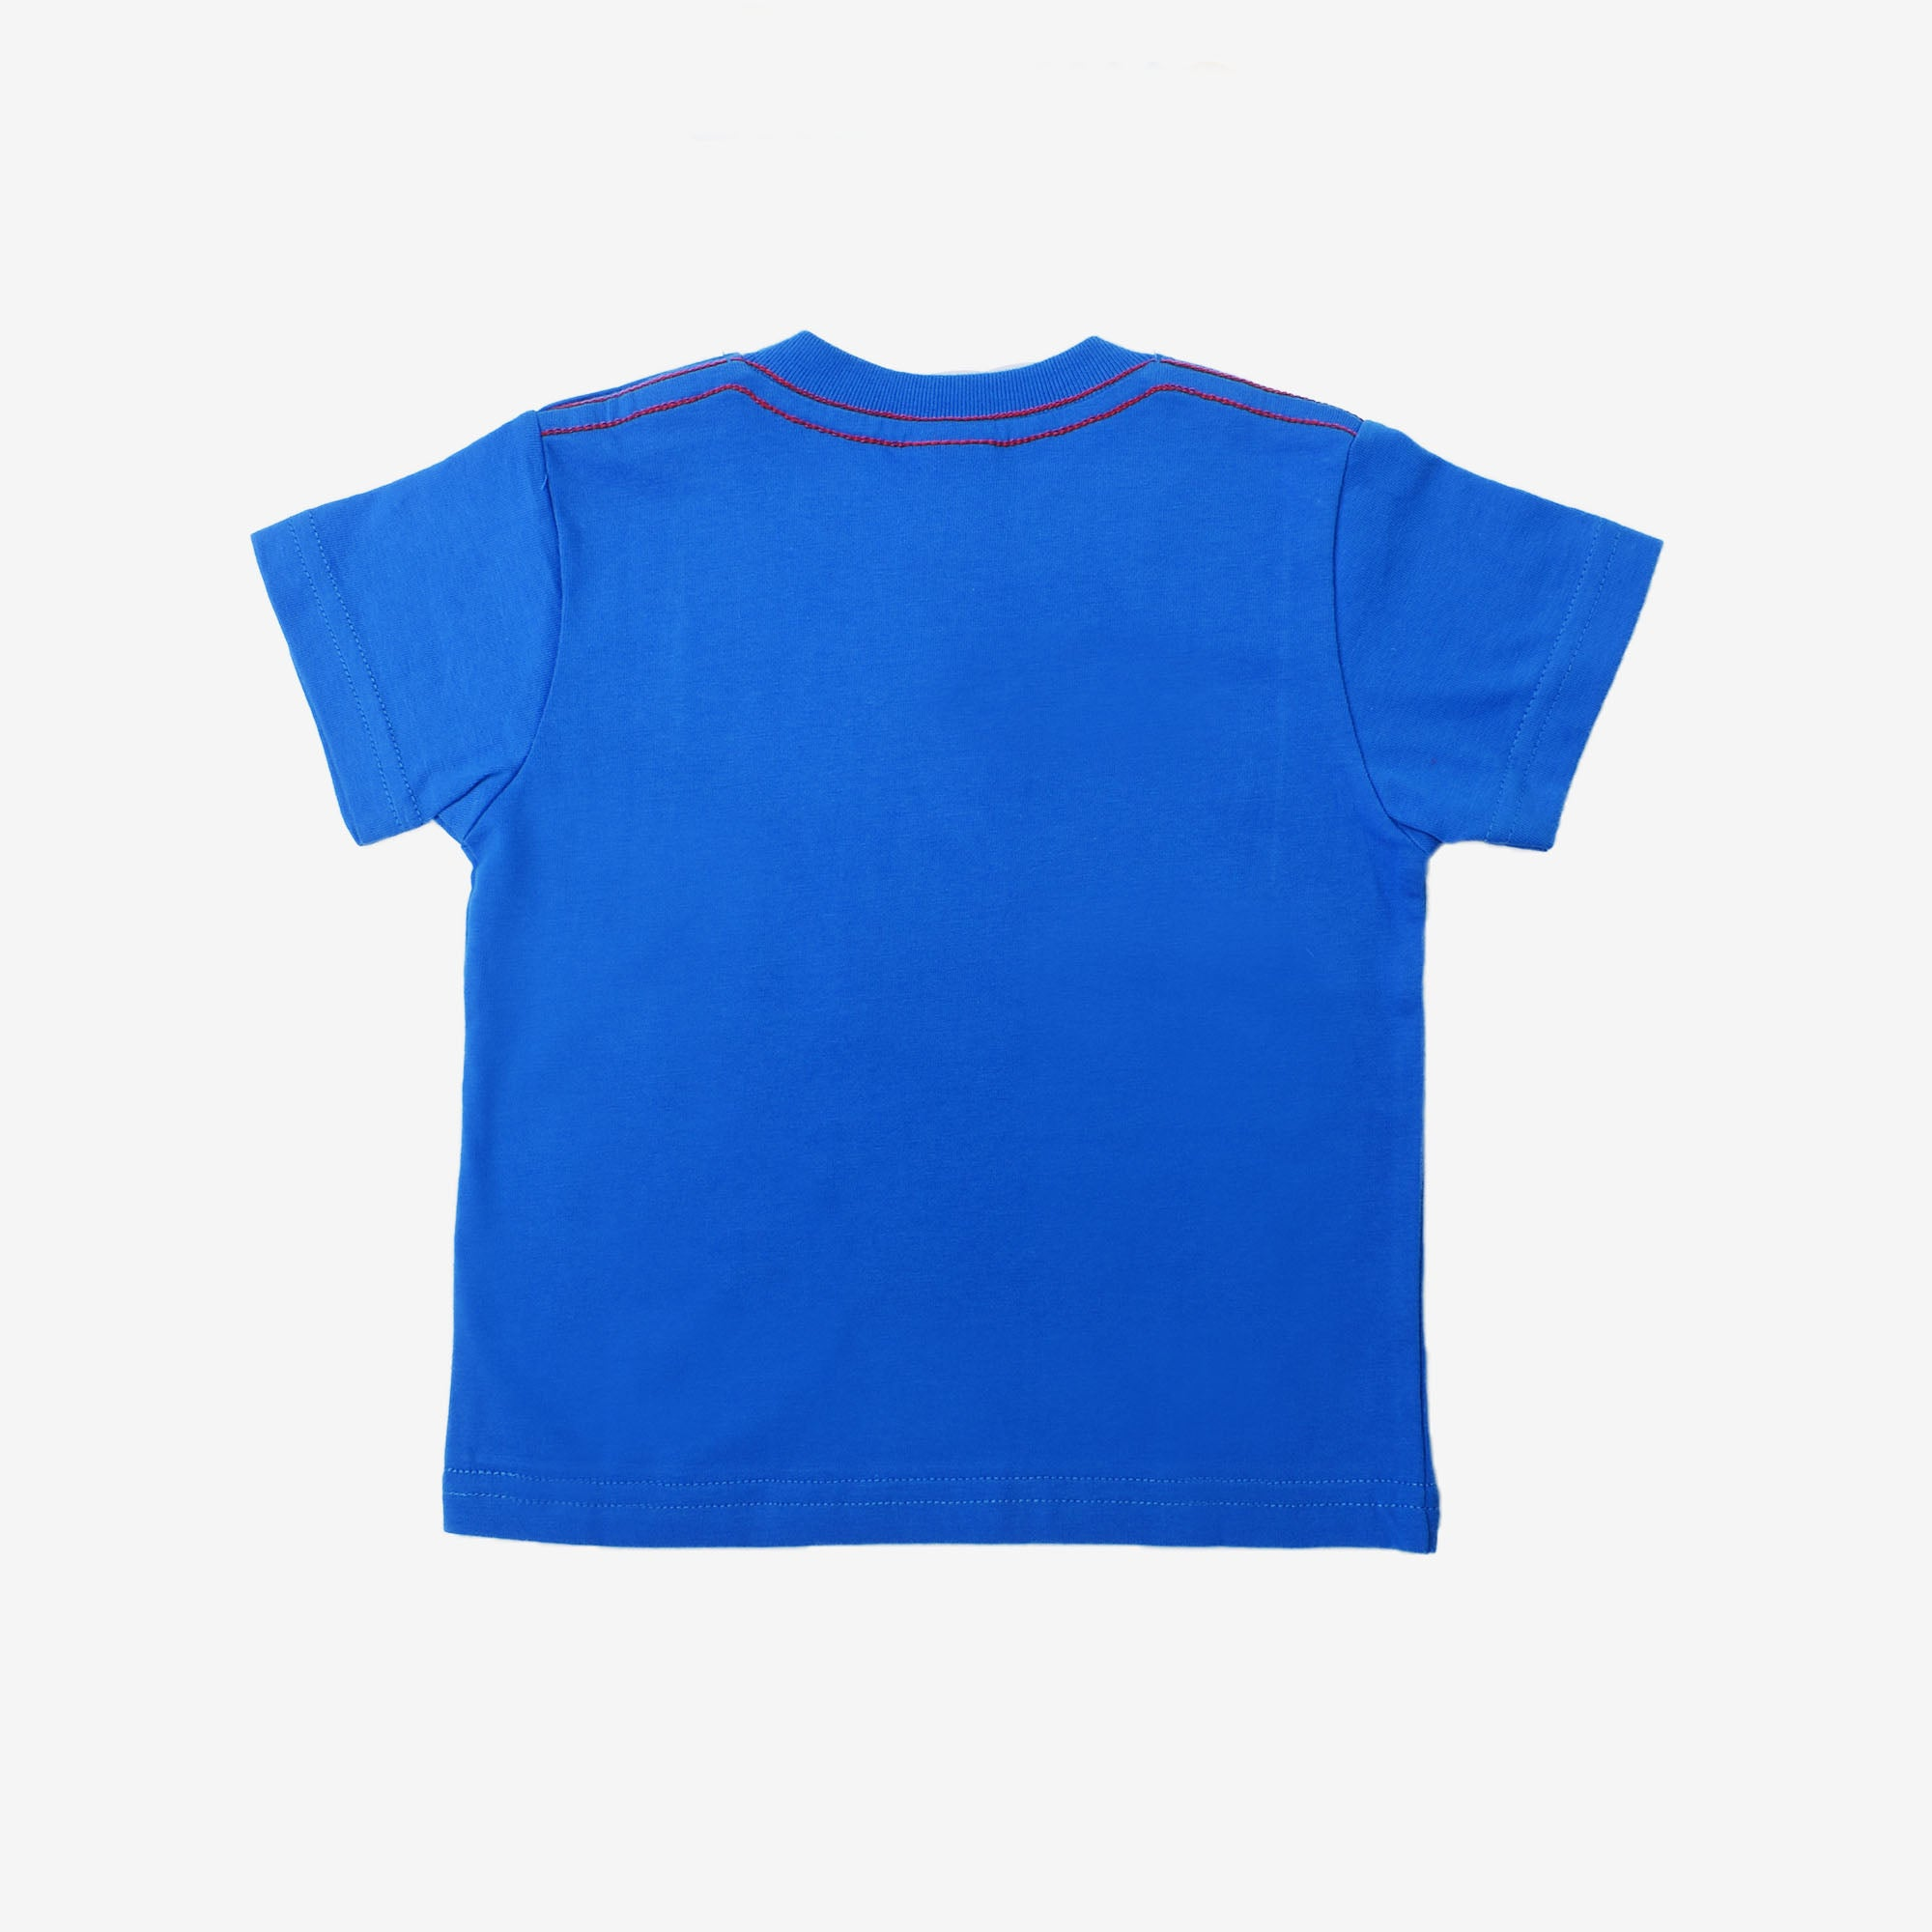 Strong Man Graphic Short Sleeve Tee- Blue